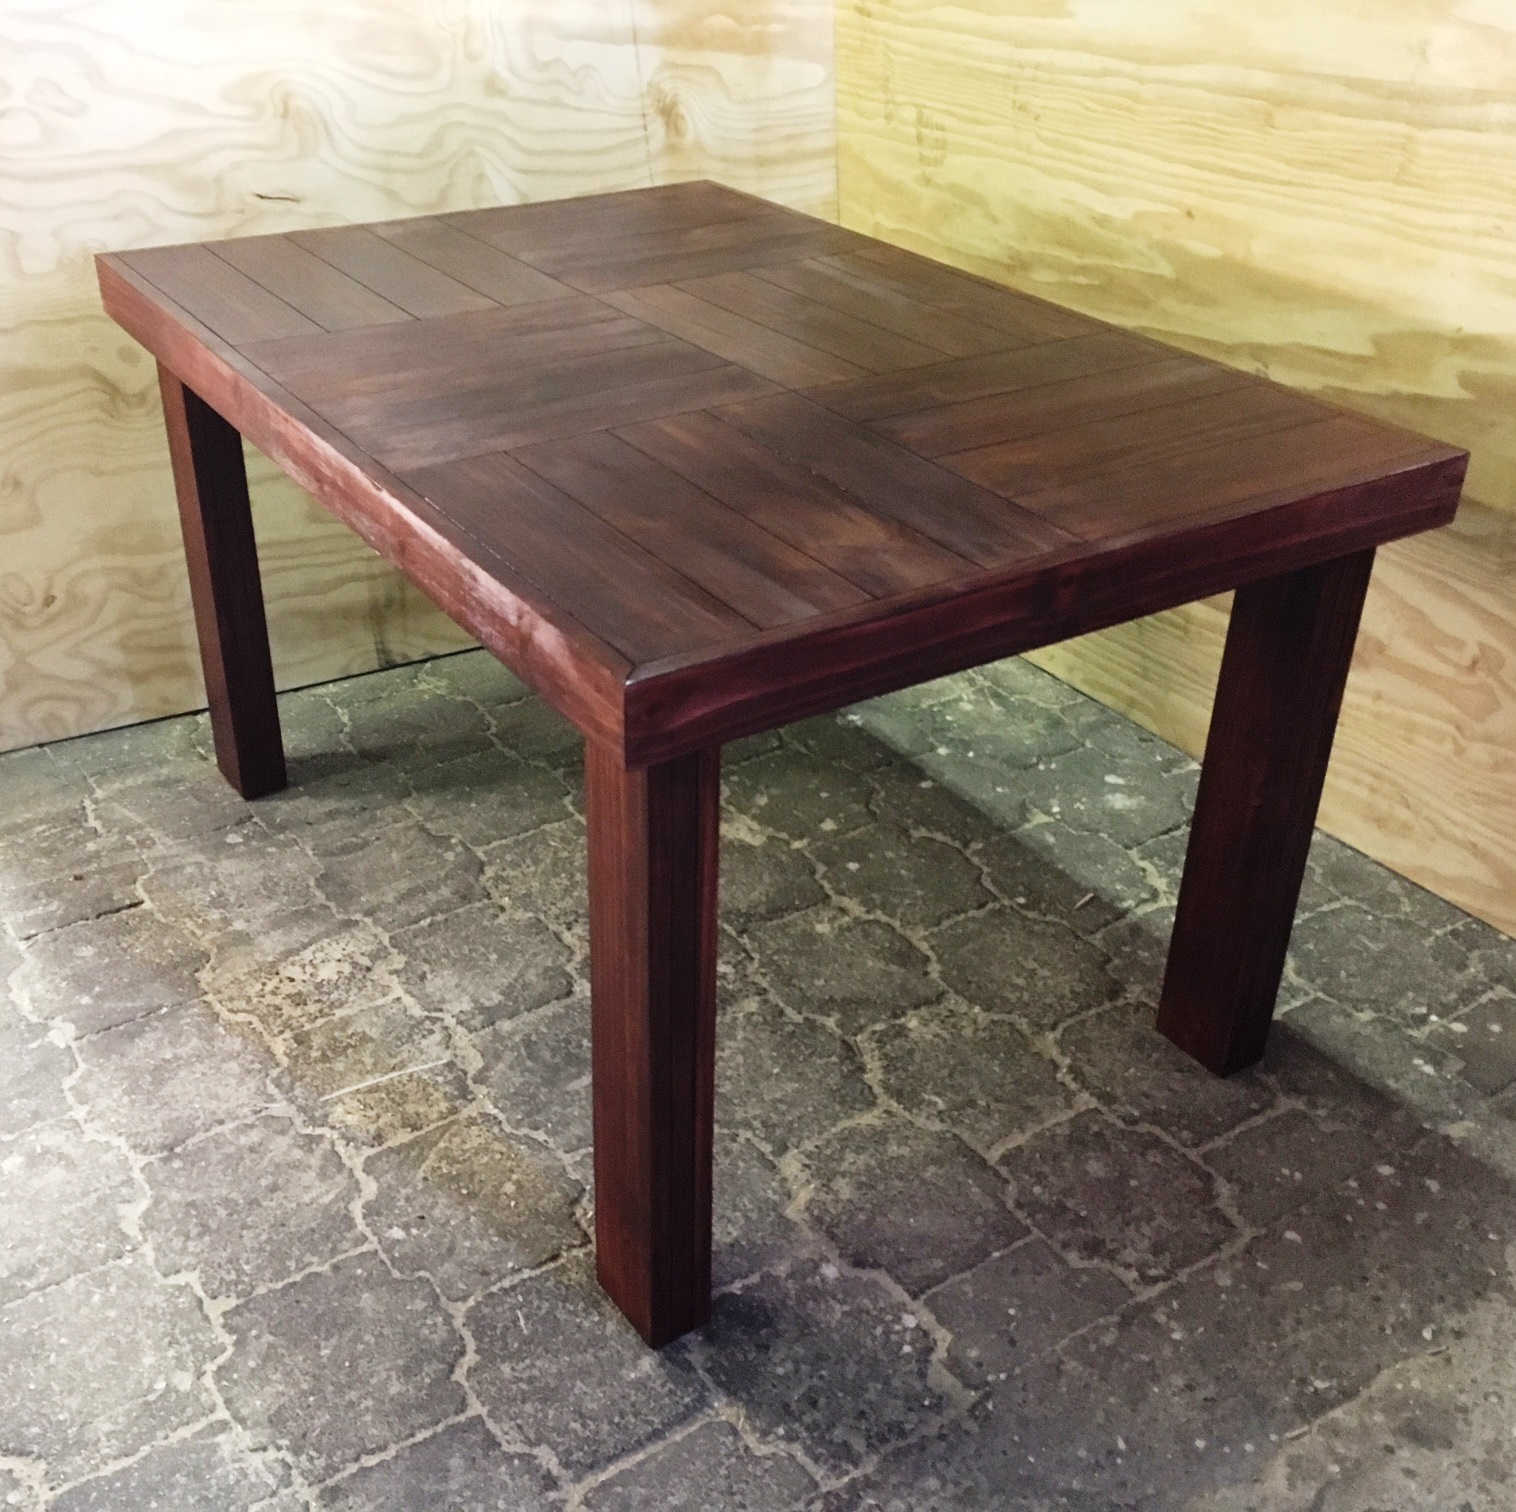 Patio table Farmhouse series 1450 Stained